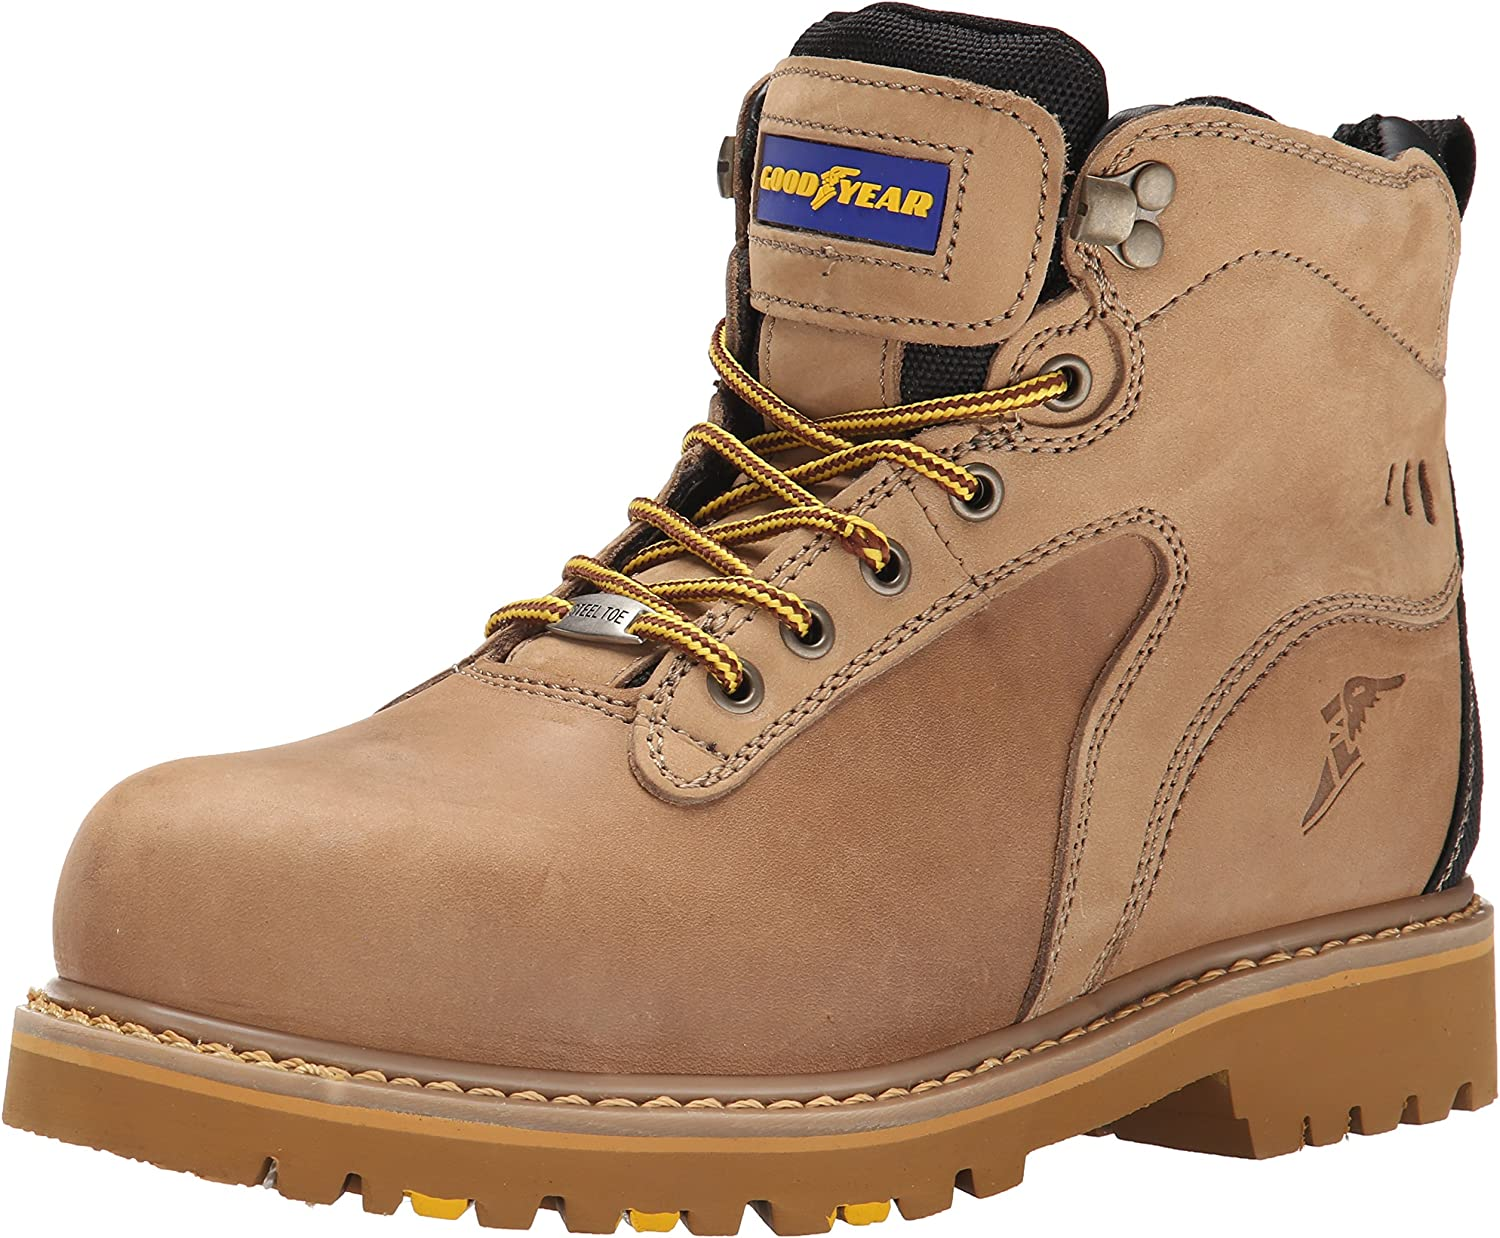 Goodyear Men's Darlington S Steel Toe Work Boot